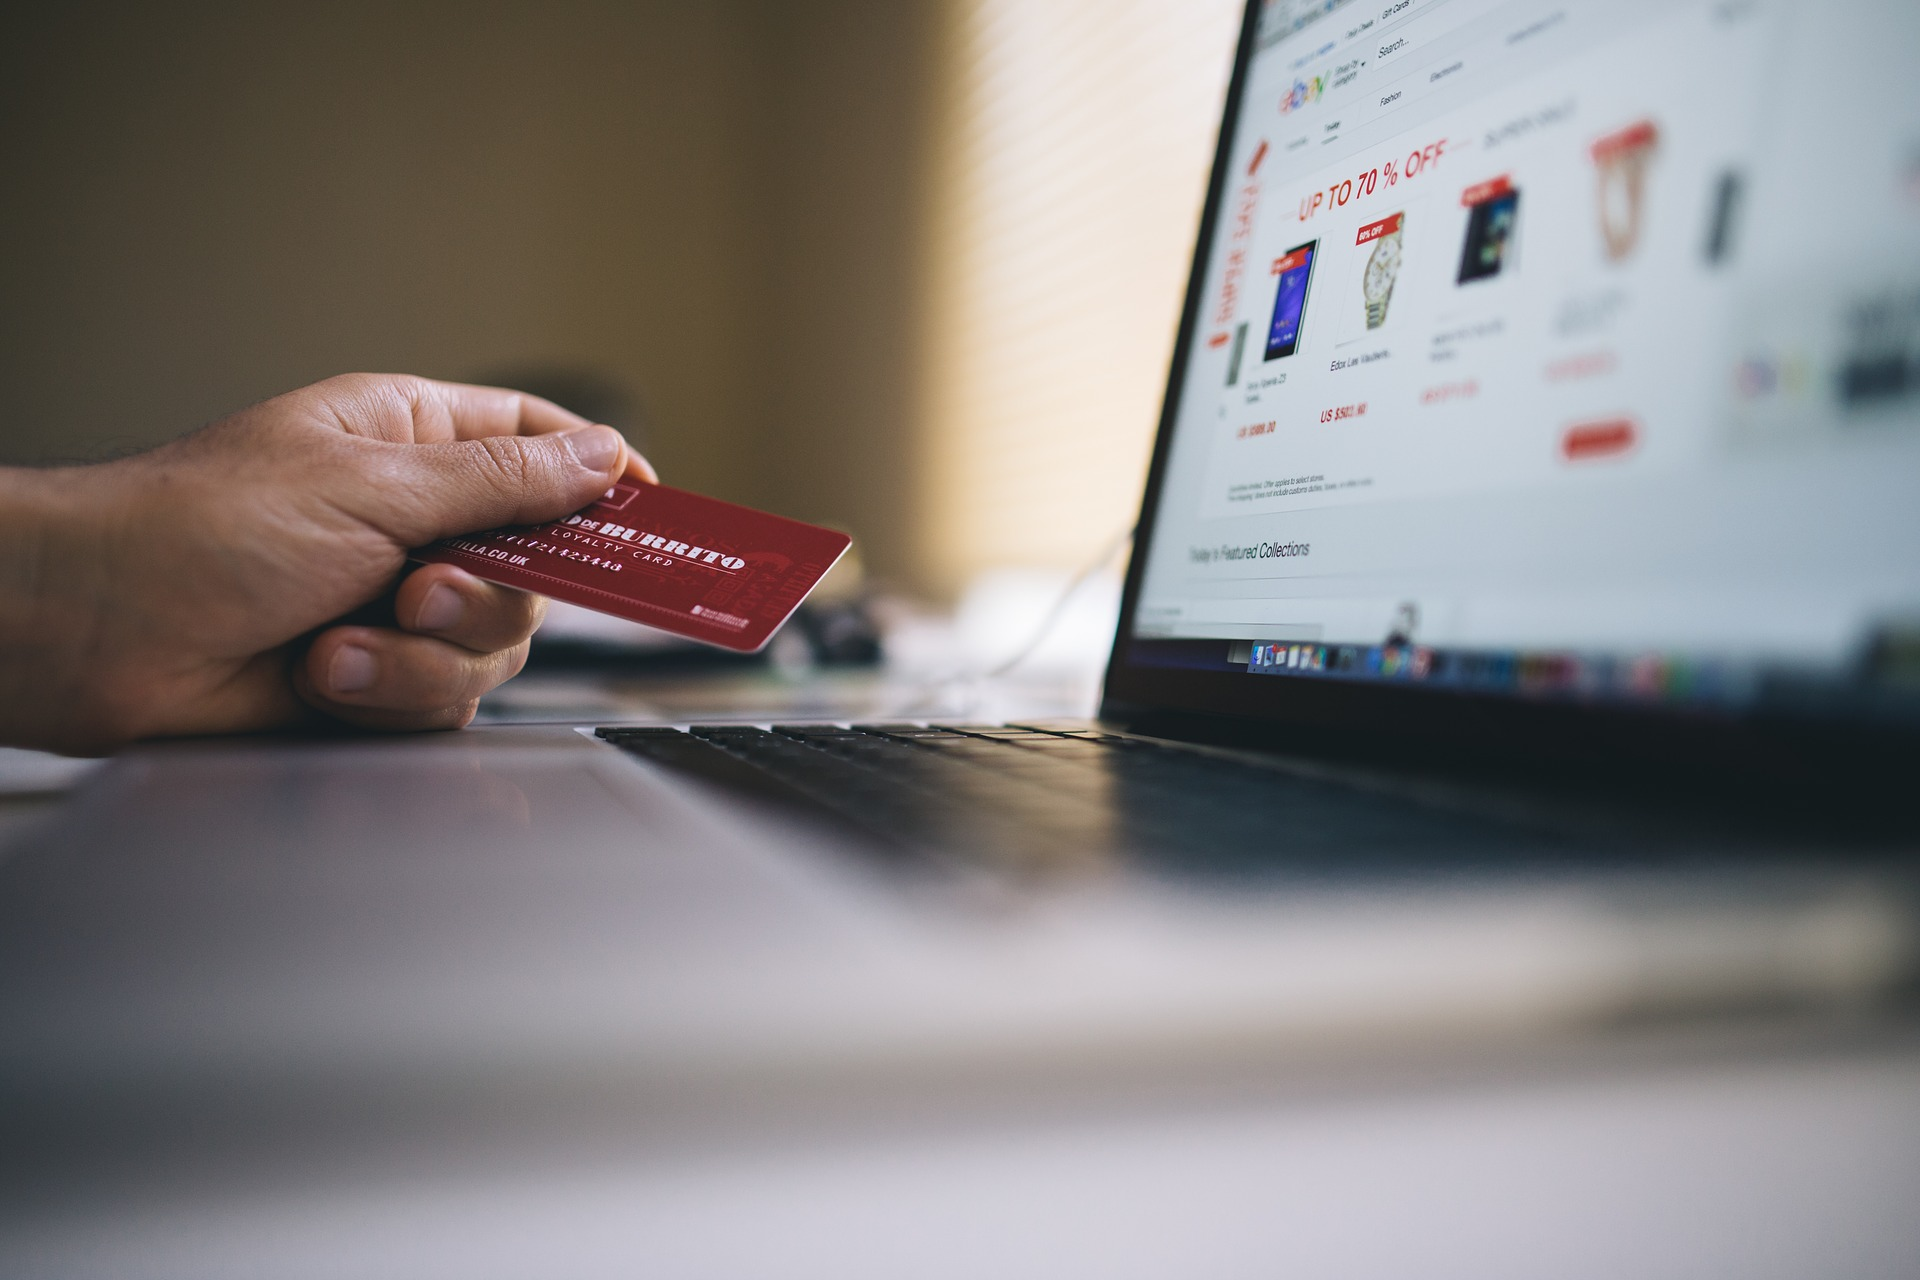 Benefits of Magento 2 Multi-language extension for eCommerce stores